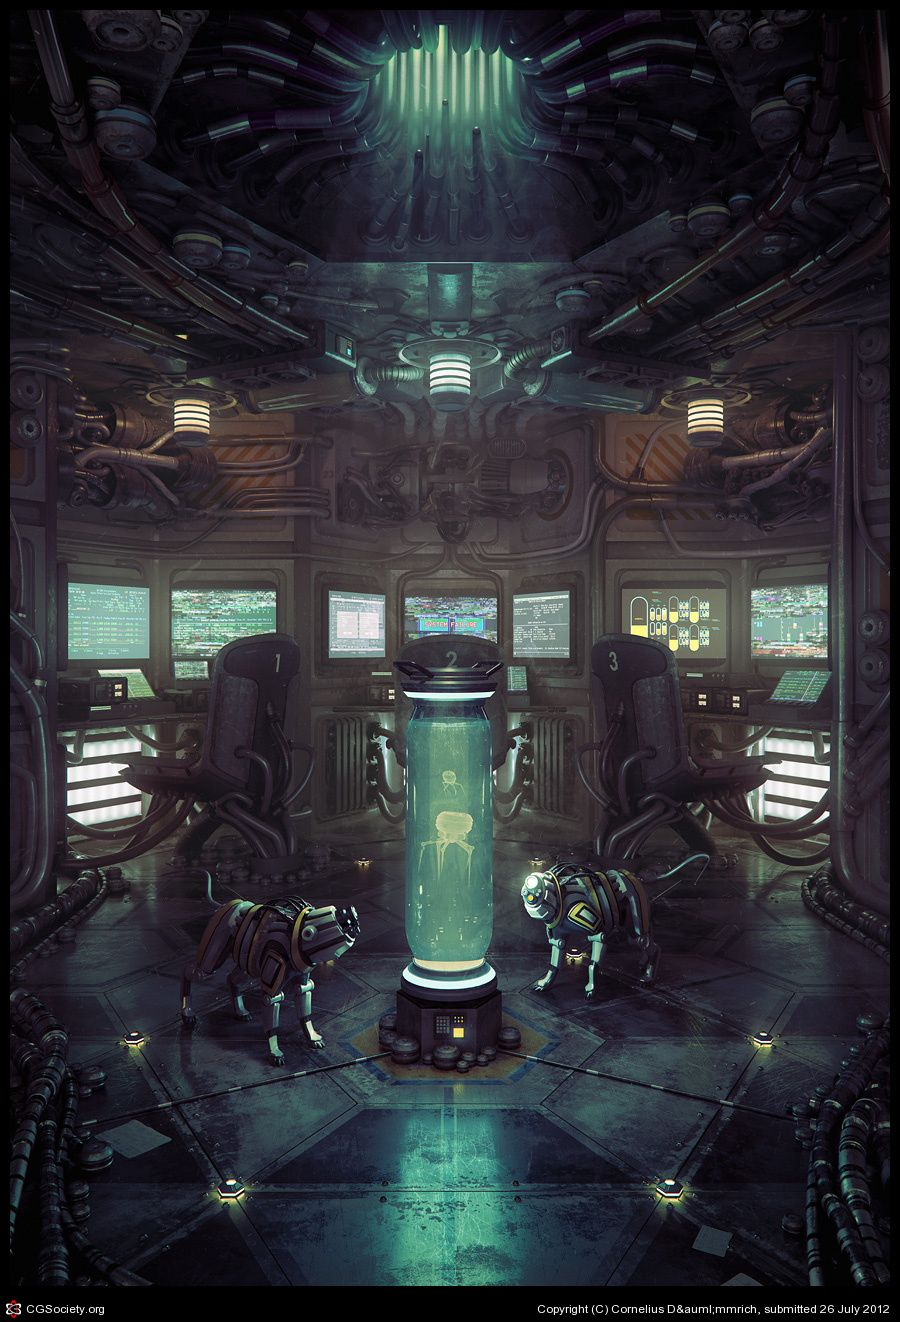 Laboratory Room Design: Http://features.cgsociety.org/newgallerycrits/g11/285211